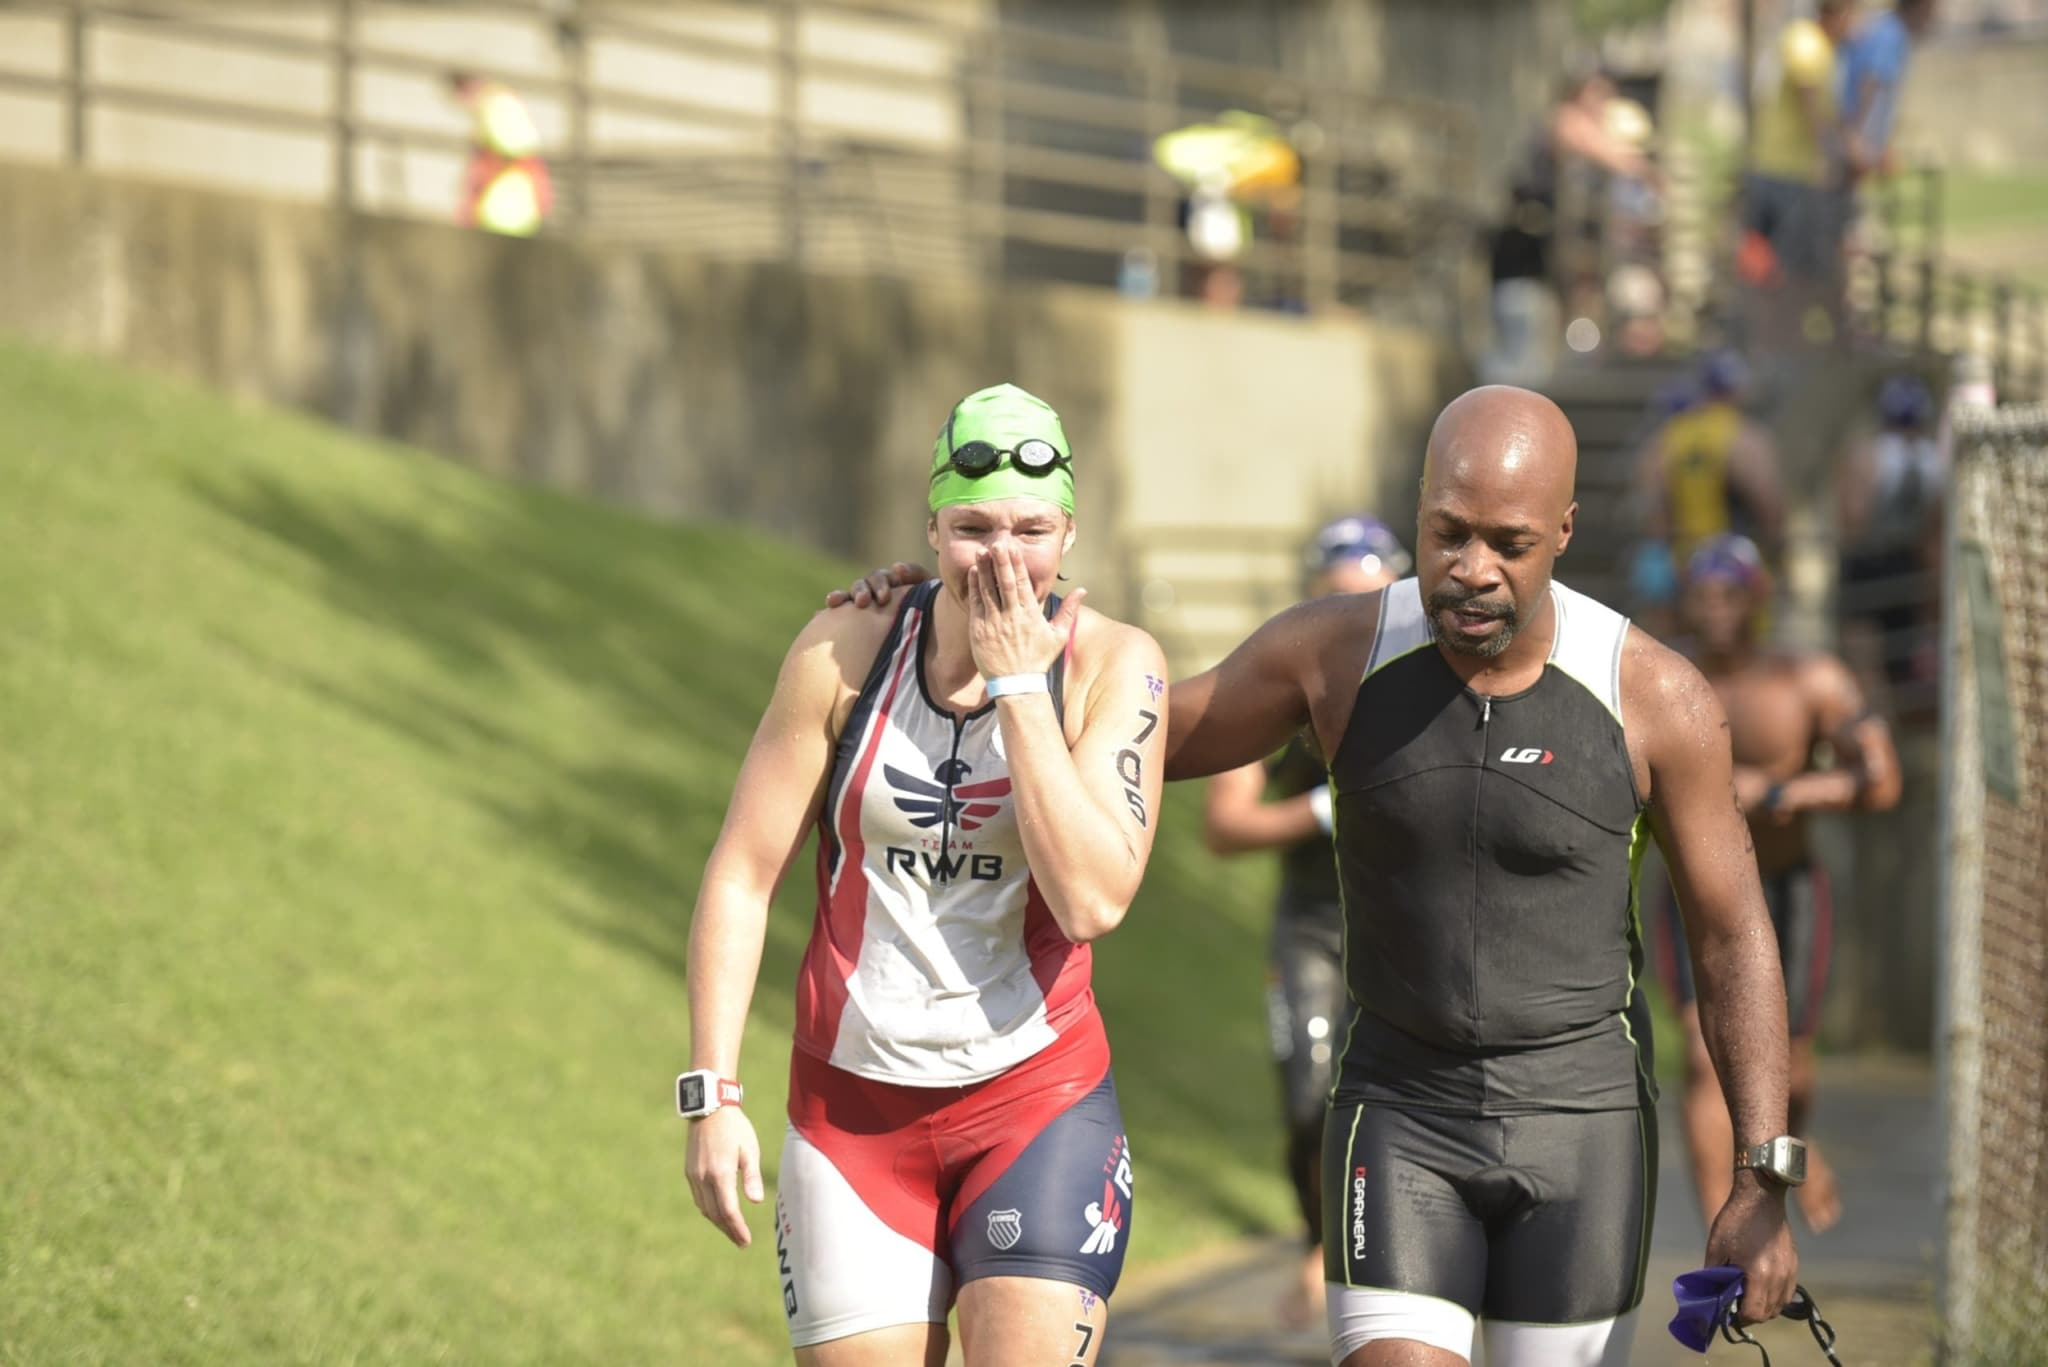 I knew triathlon is about more than just racing. But I didn't know it was about crying. https://wp.me/p5hM3U-c3